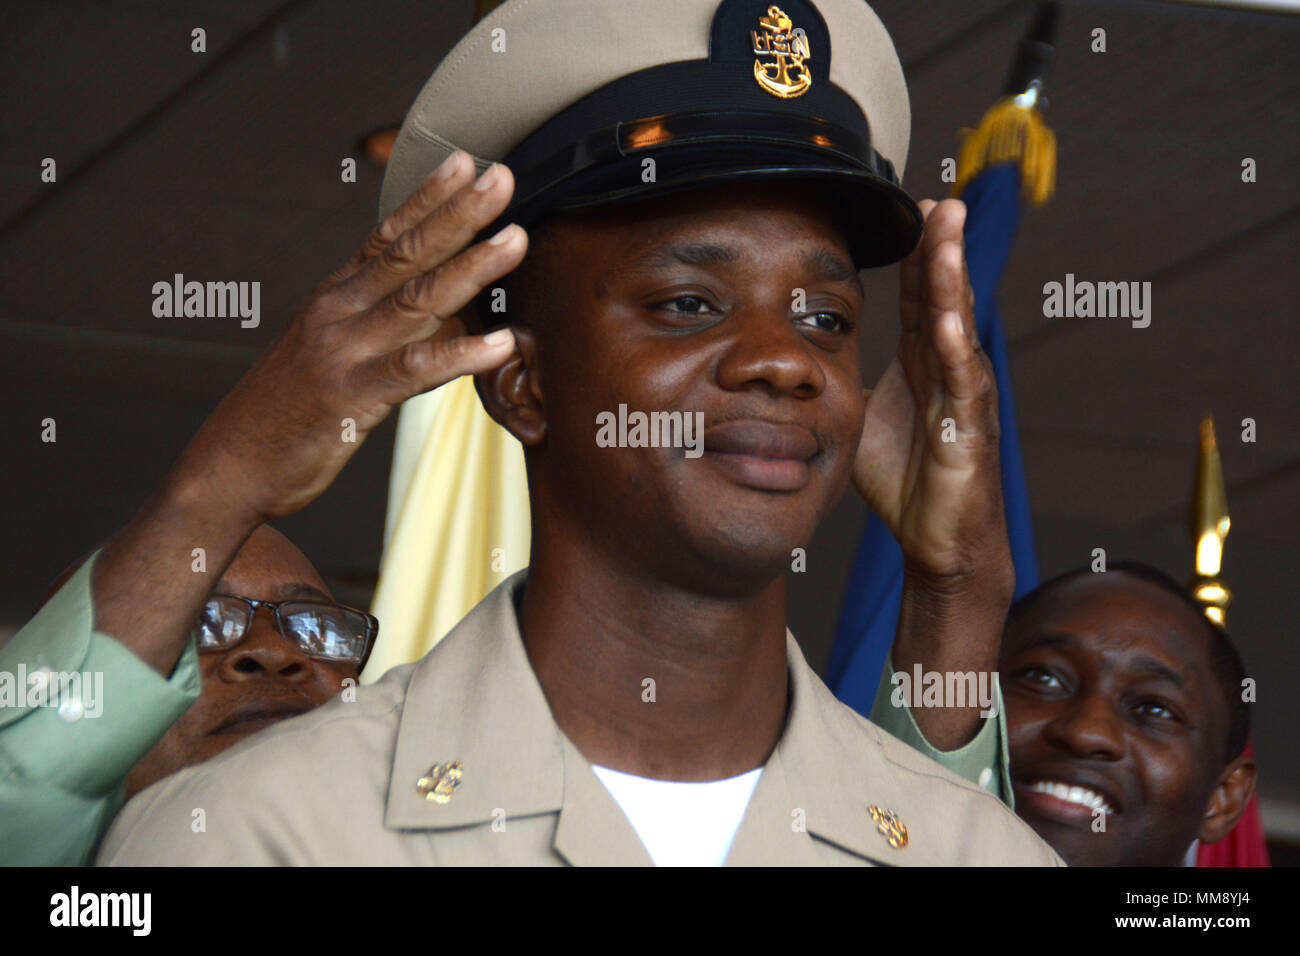 GARDEN CITY, New York (Sept. 15, 2017) Chief Boatswain's Mate Dwayne Todd, assigned to Navy Recruiting District New York and a native of Laurelton, New York, having his new cover donned on him by his father during a chief petty officer pinning ceremony at the Cradle of Aviation Museum. (U.S. Navy photo by Mass Communication Specialist 1st Class Carlos M. Vazquez II/Released) - Stock Image